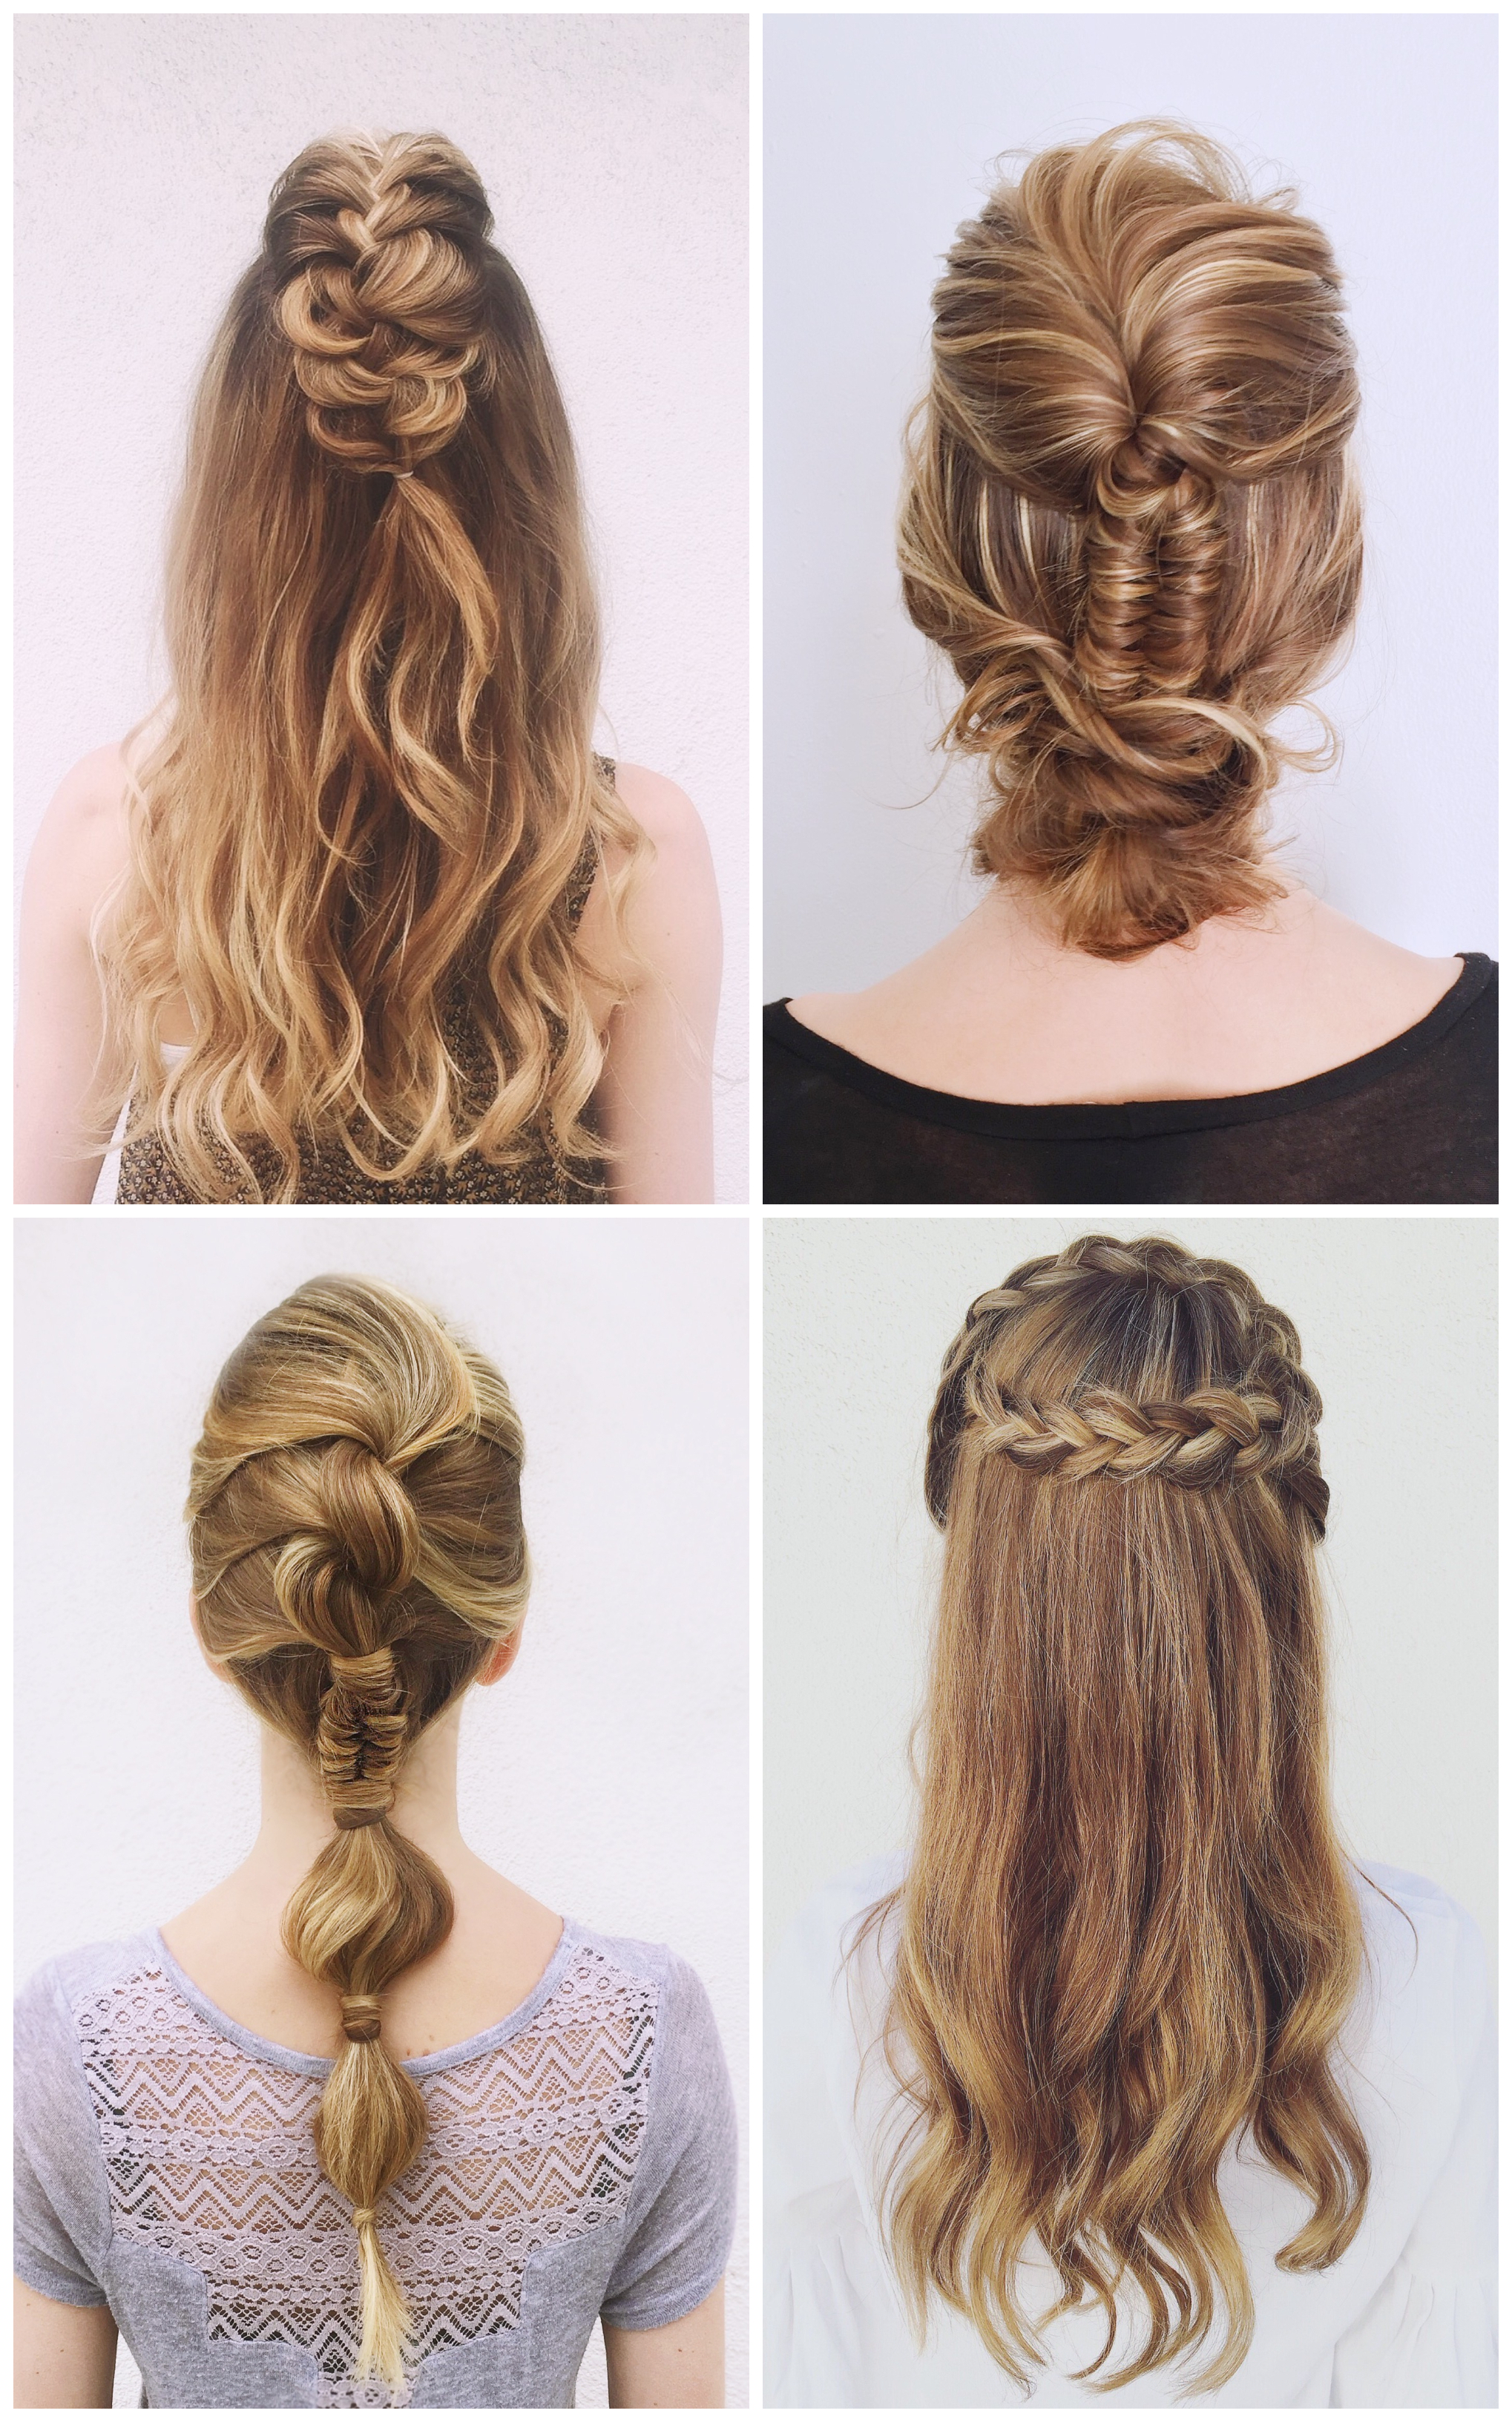 20 Braided Prom Hairstyles For Stylish Girls In Well Liked Classic Roll Prom Updos With Braid (Gallery 4 of 20)